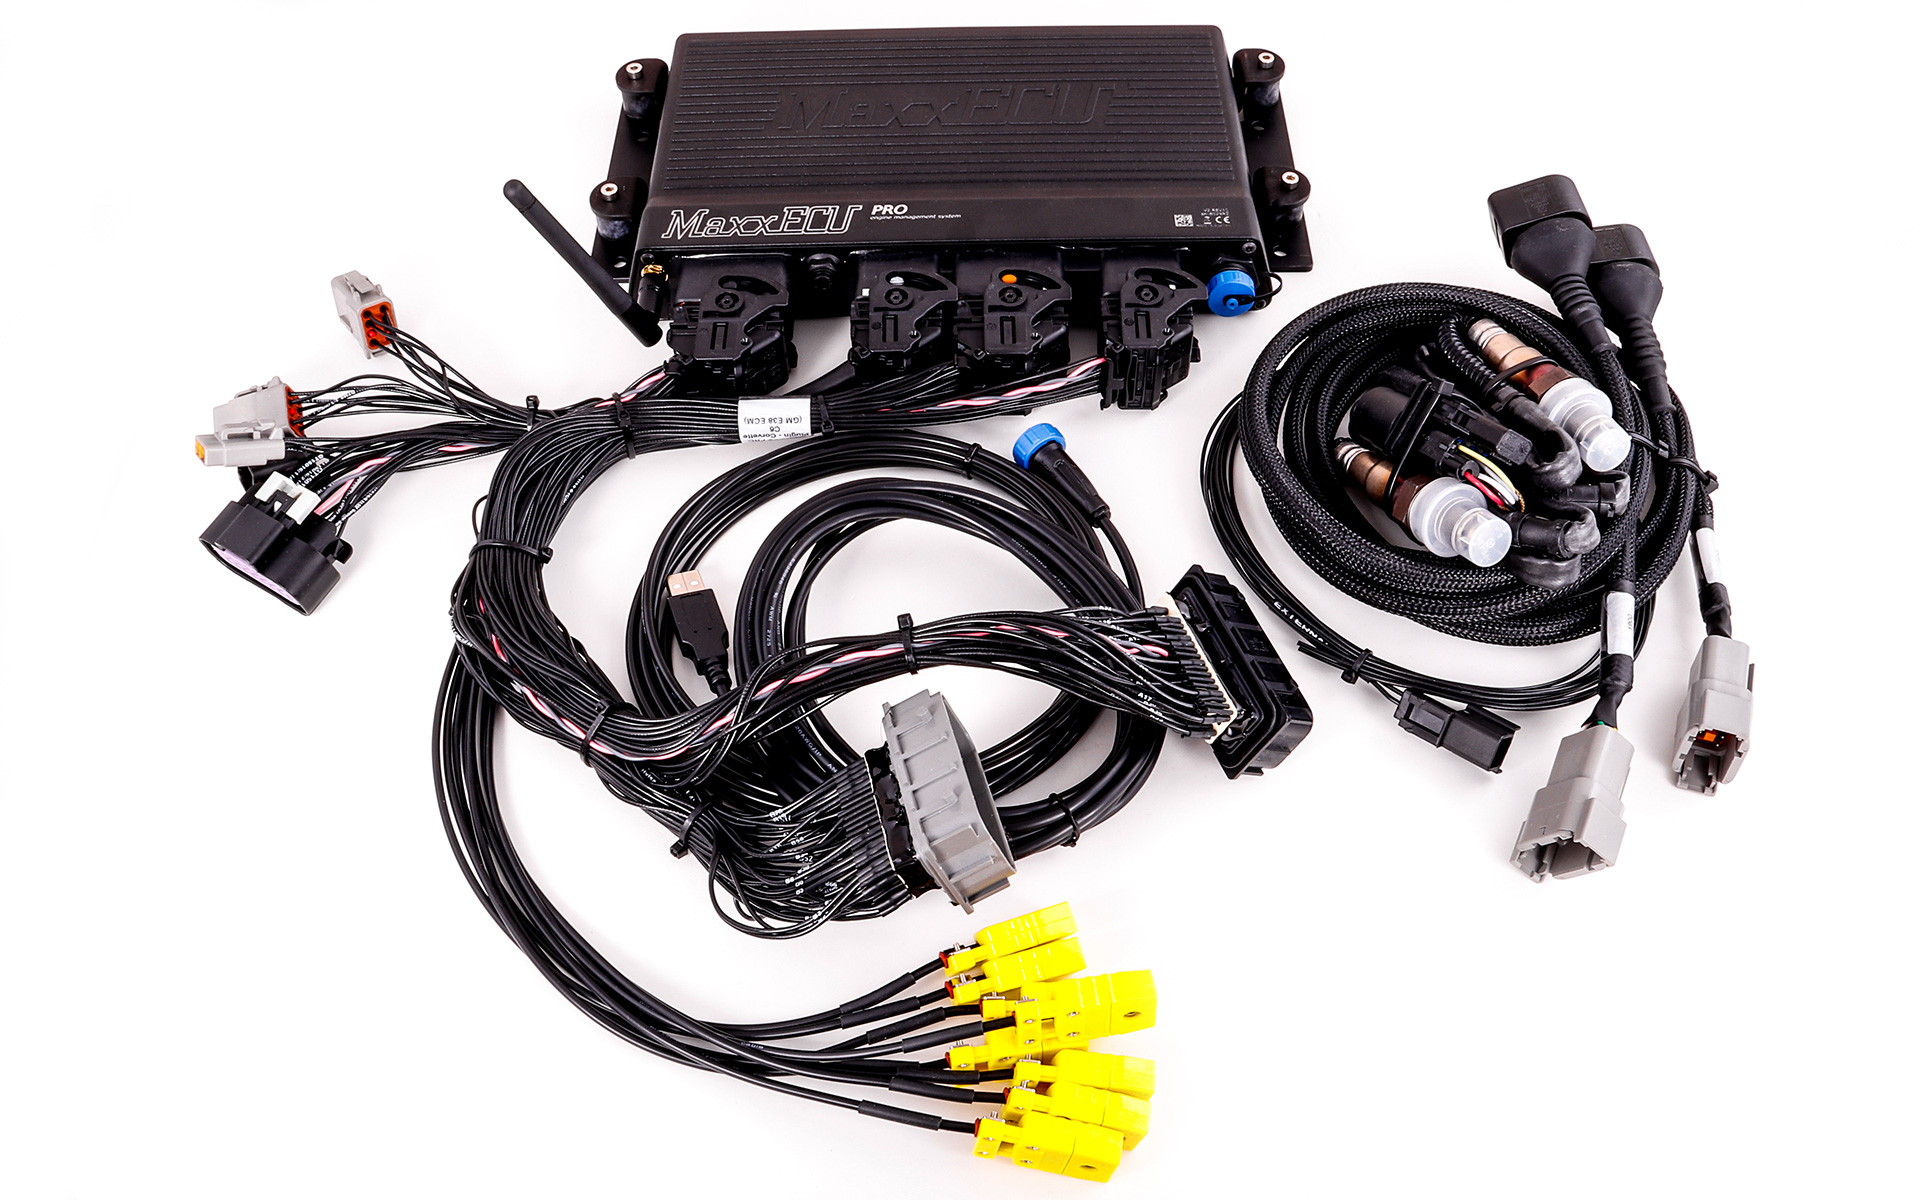 Complete MaxxECU PRO plugin kit for Corvette C6 with Bosch wideband sensors